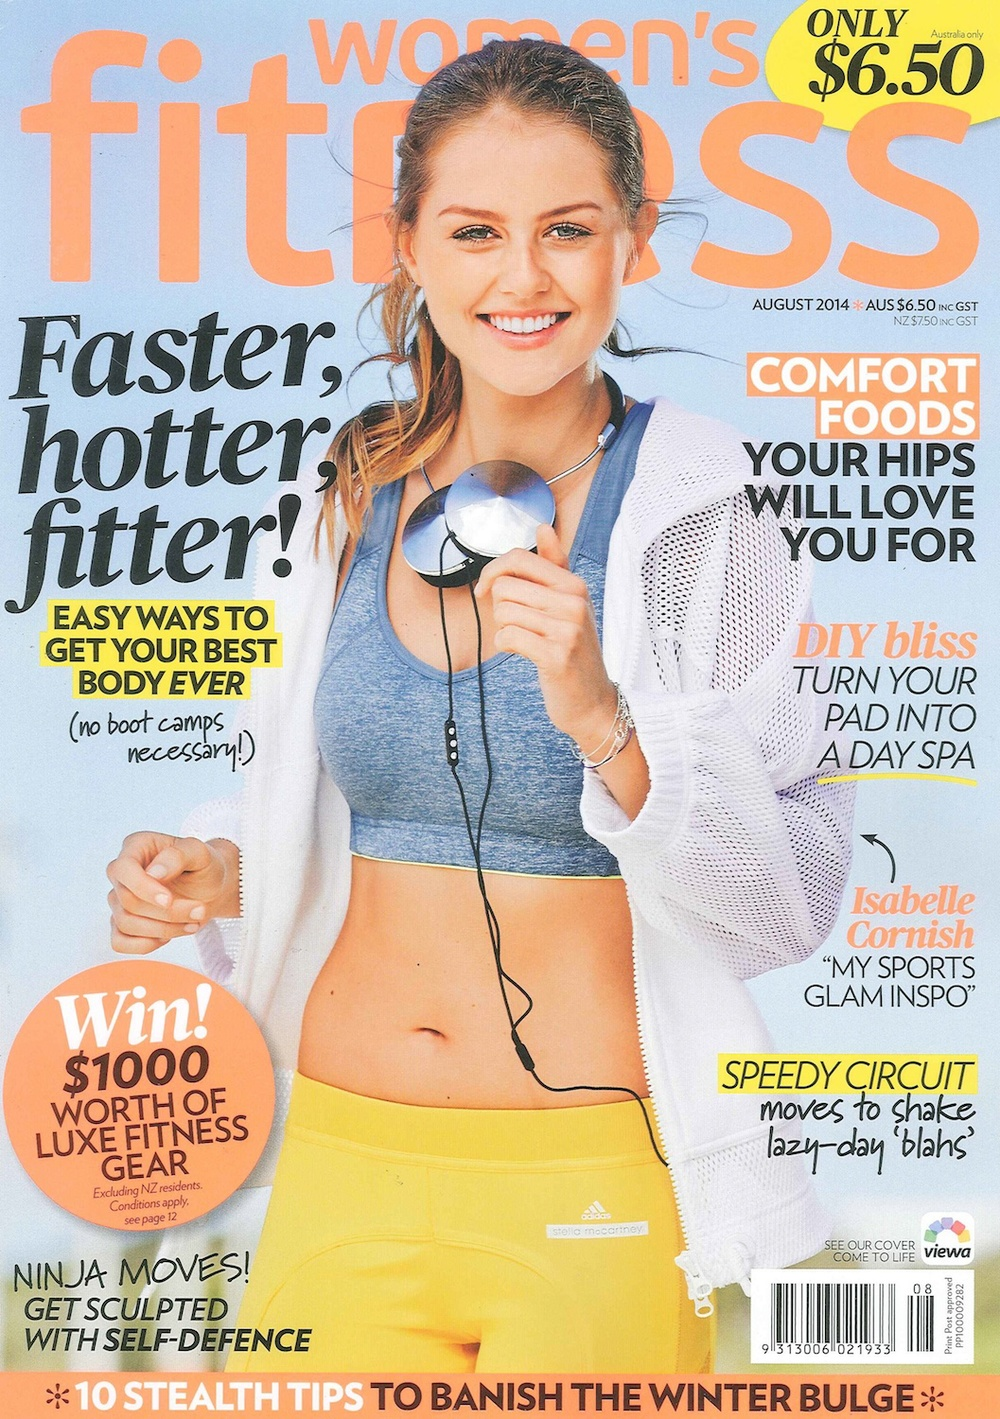 2014-JULY-WOMENSFITNESS-1@2x.jpg